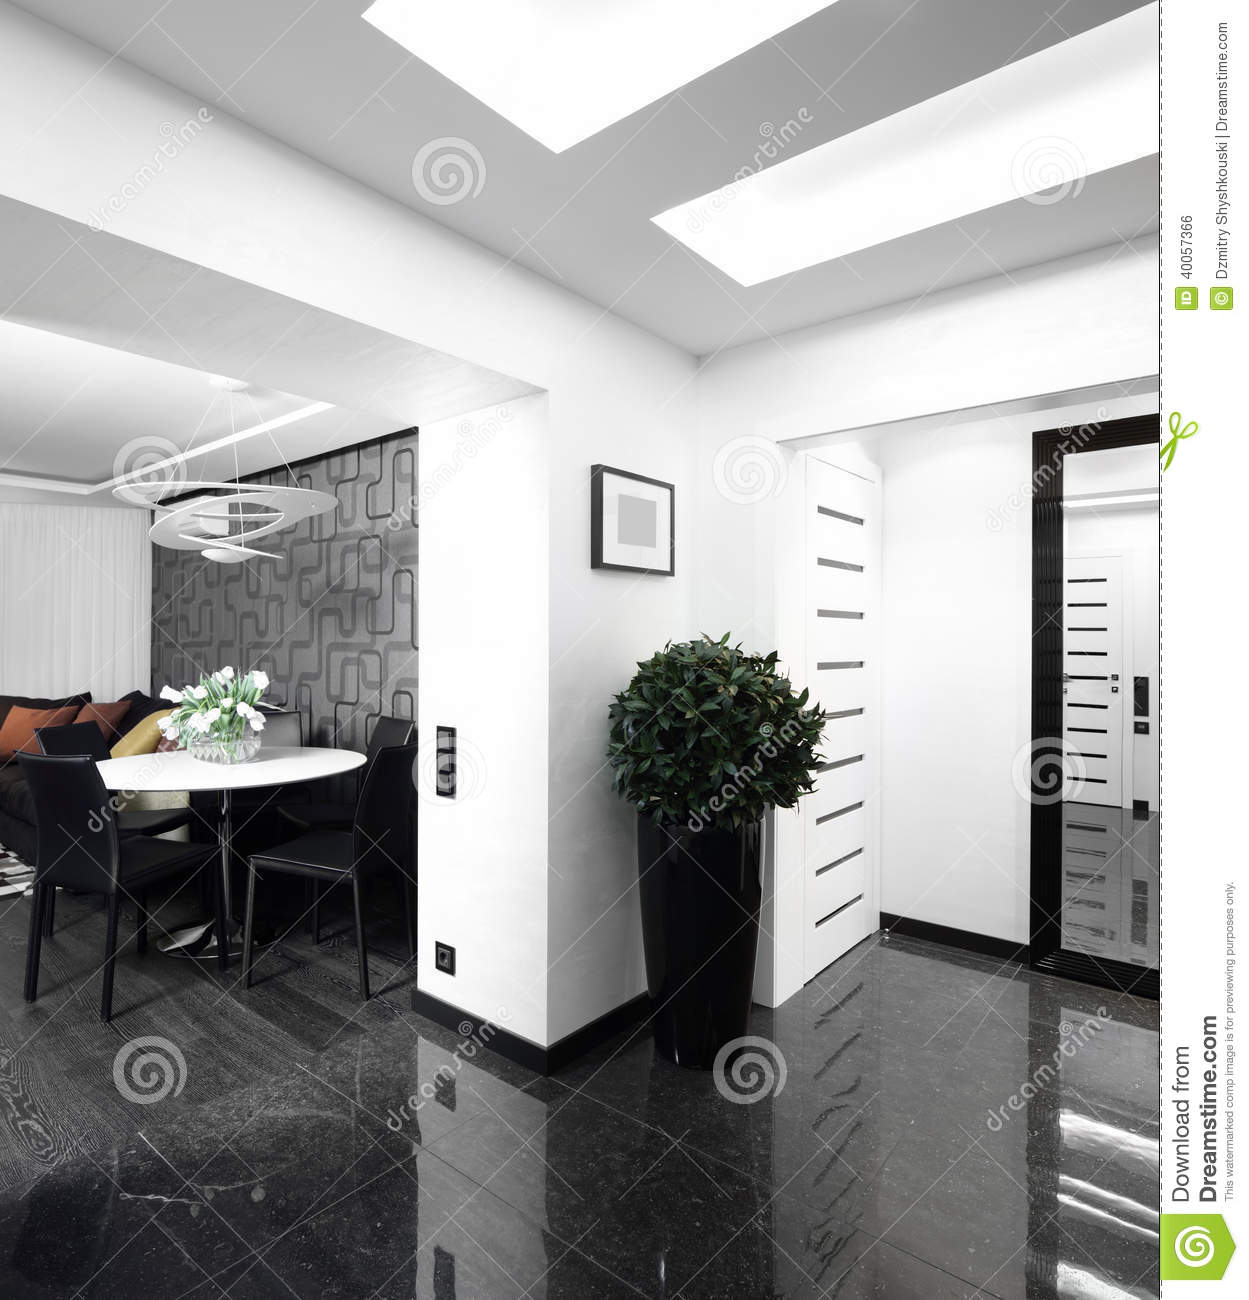 Interior Of Bright Hallway Home Stock Photo - Image of ... on home modern house design, tv interior design hall, office hall, tile hall, home luxury house interior,